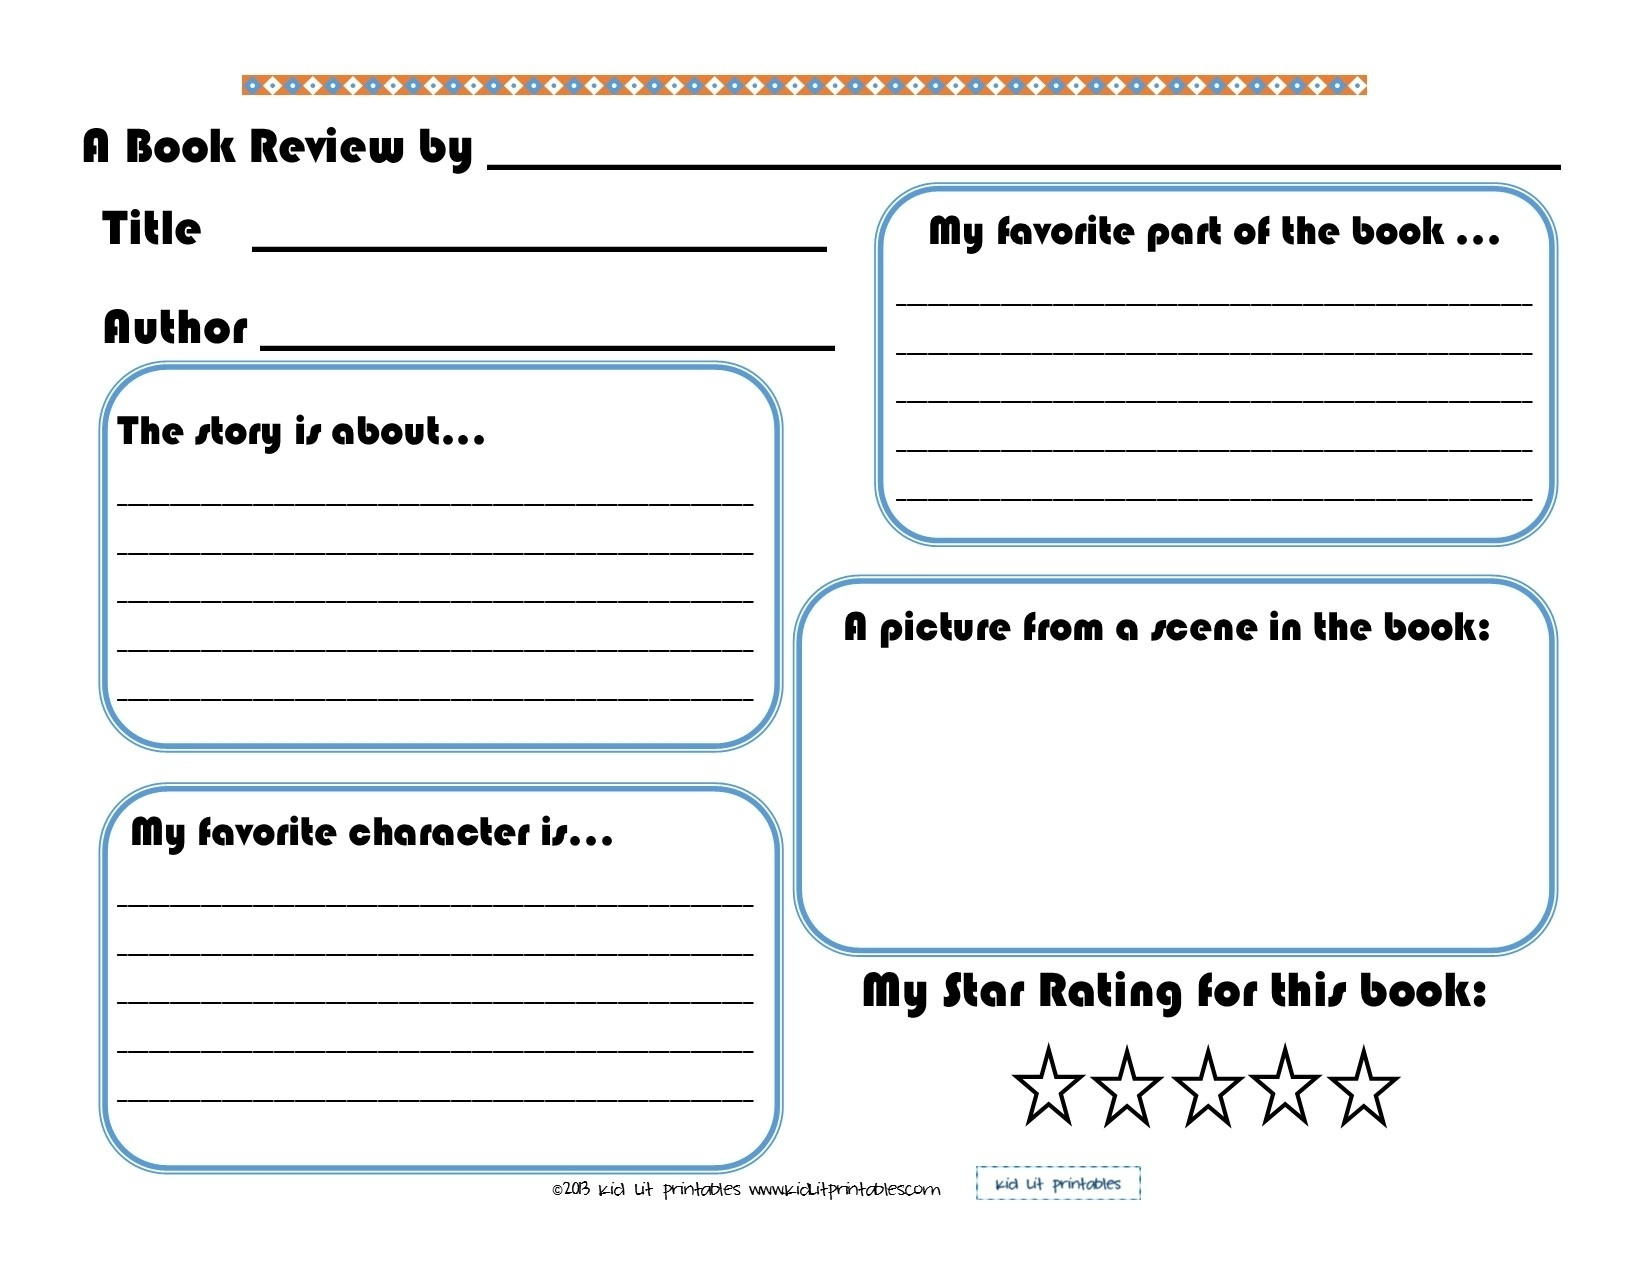 009 Best Images Of Printable Elementary Book Report Forms Pertaining - Free Printable Book Report Forms For Second Grade